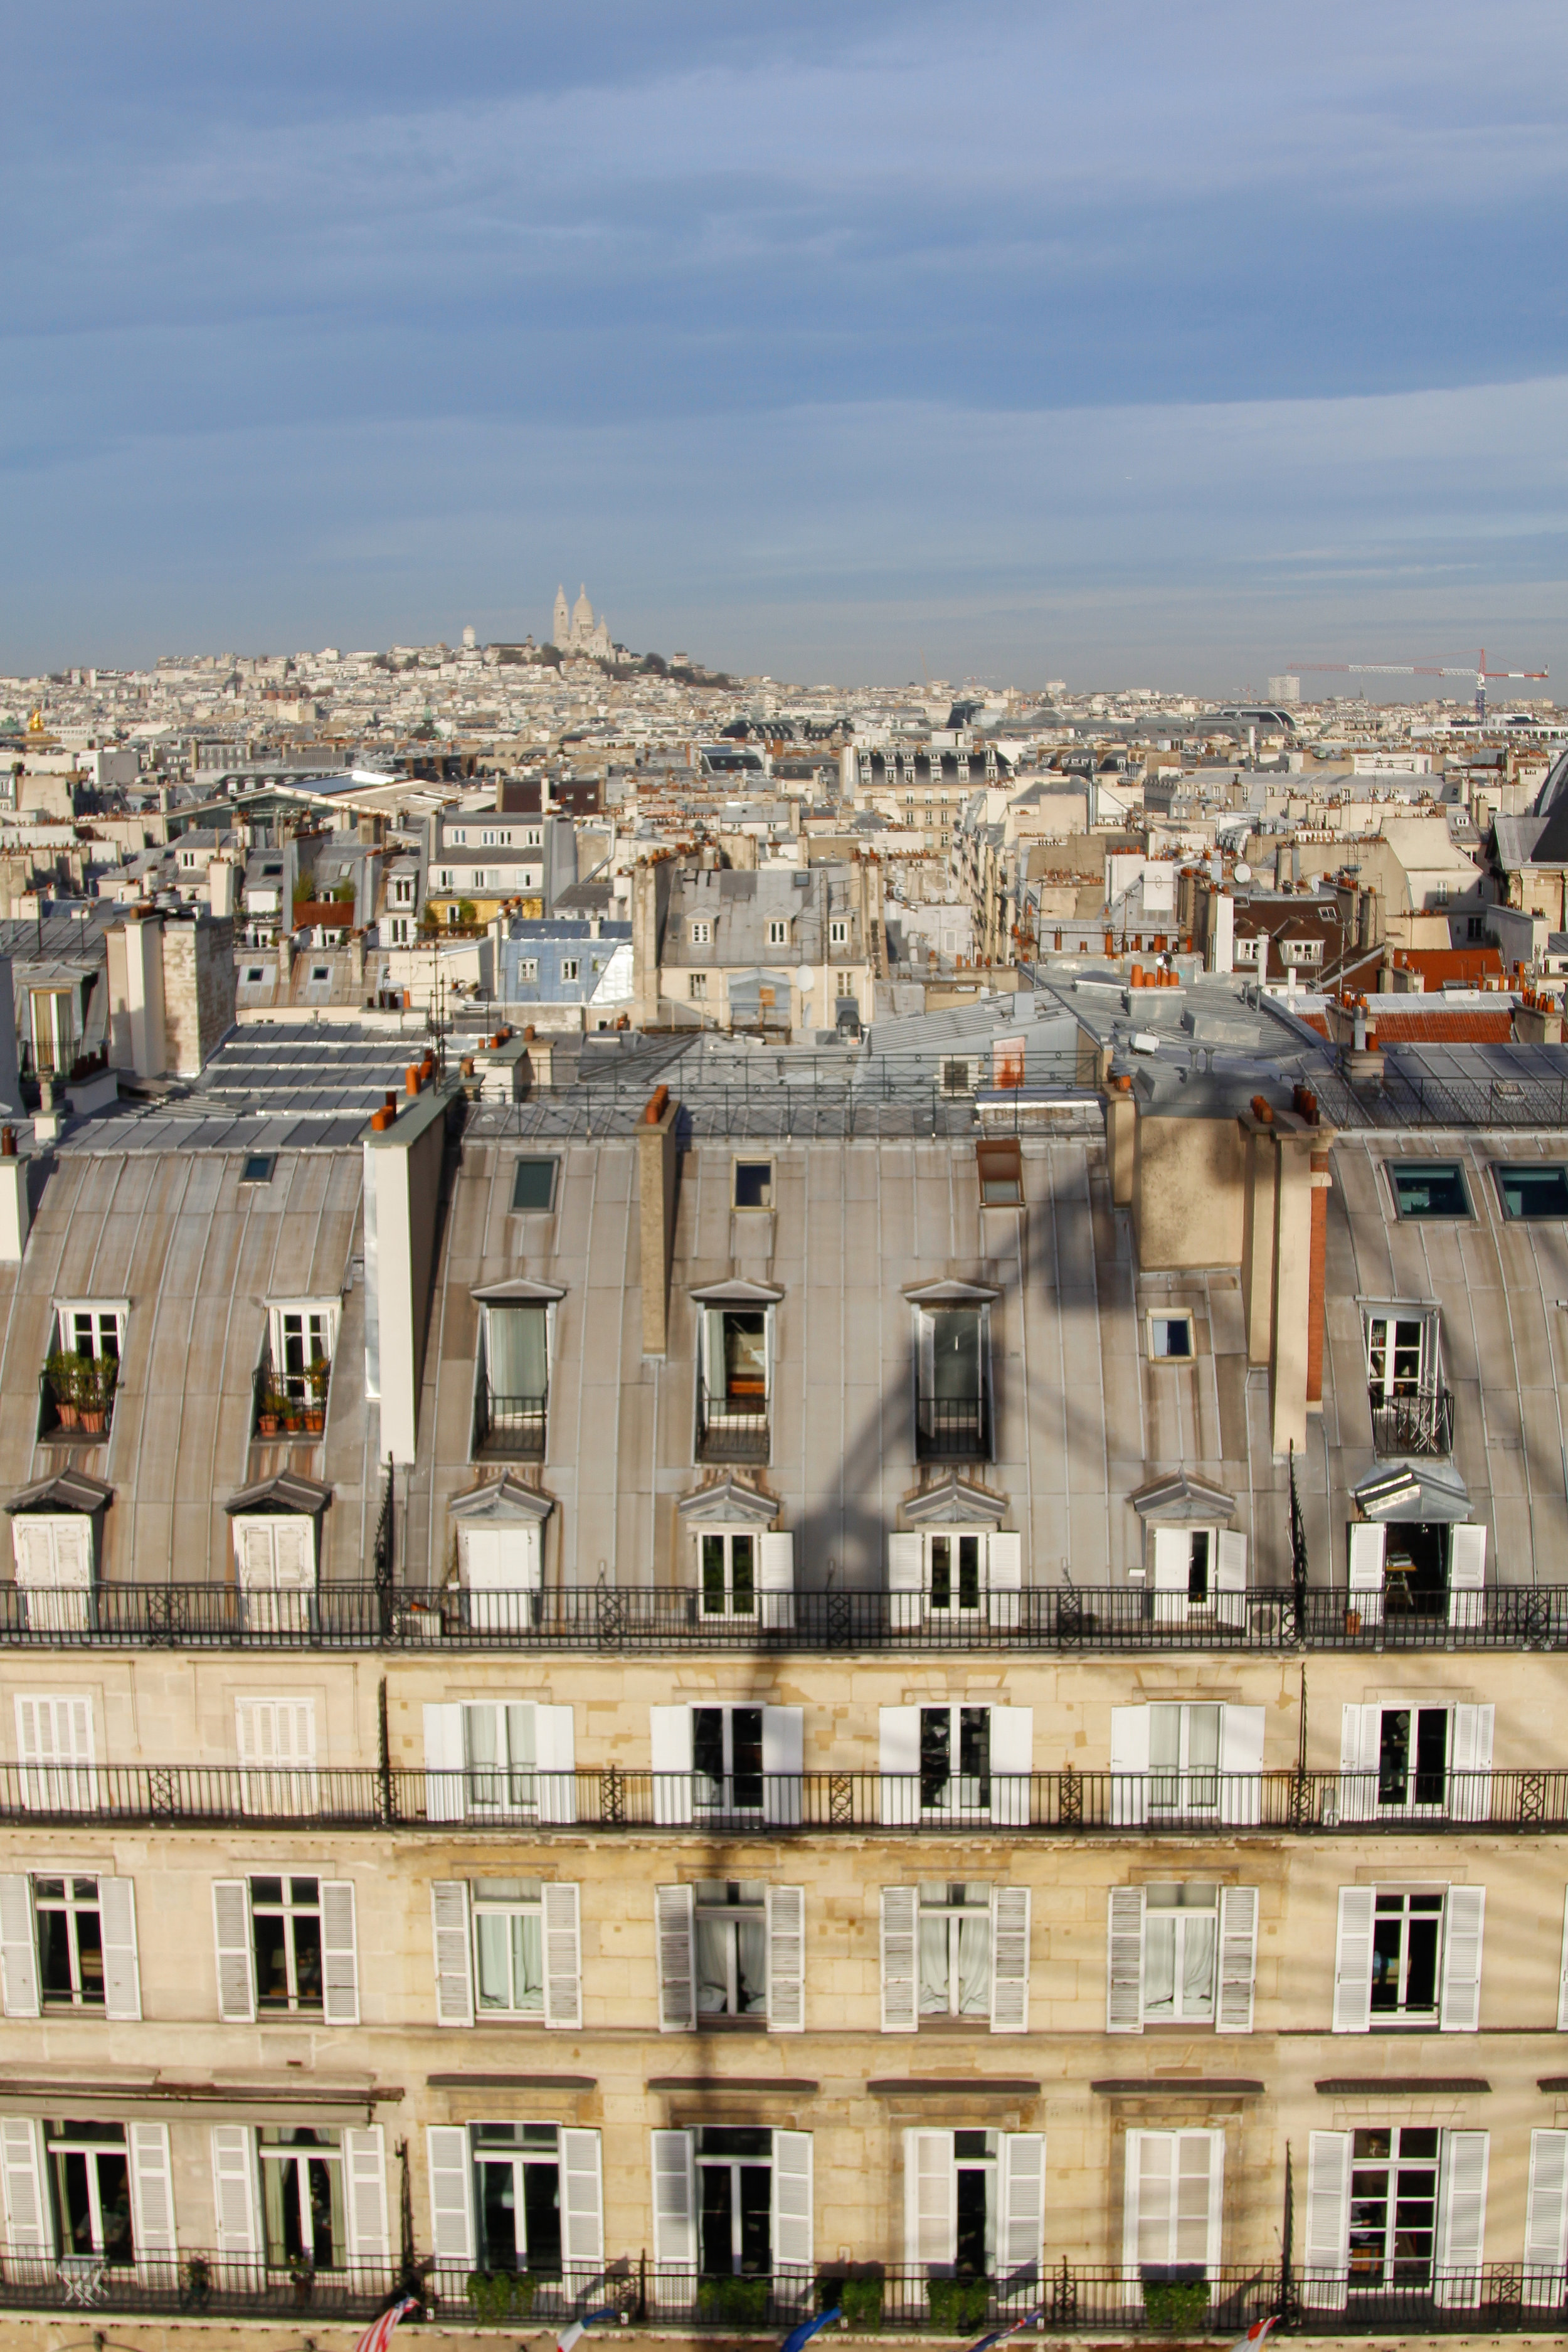 View of Montmartre and Paris from the Jardin des Tuileries ferris wheel - a must-do!